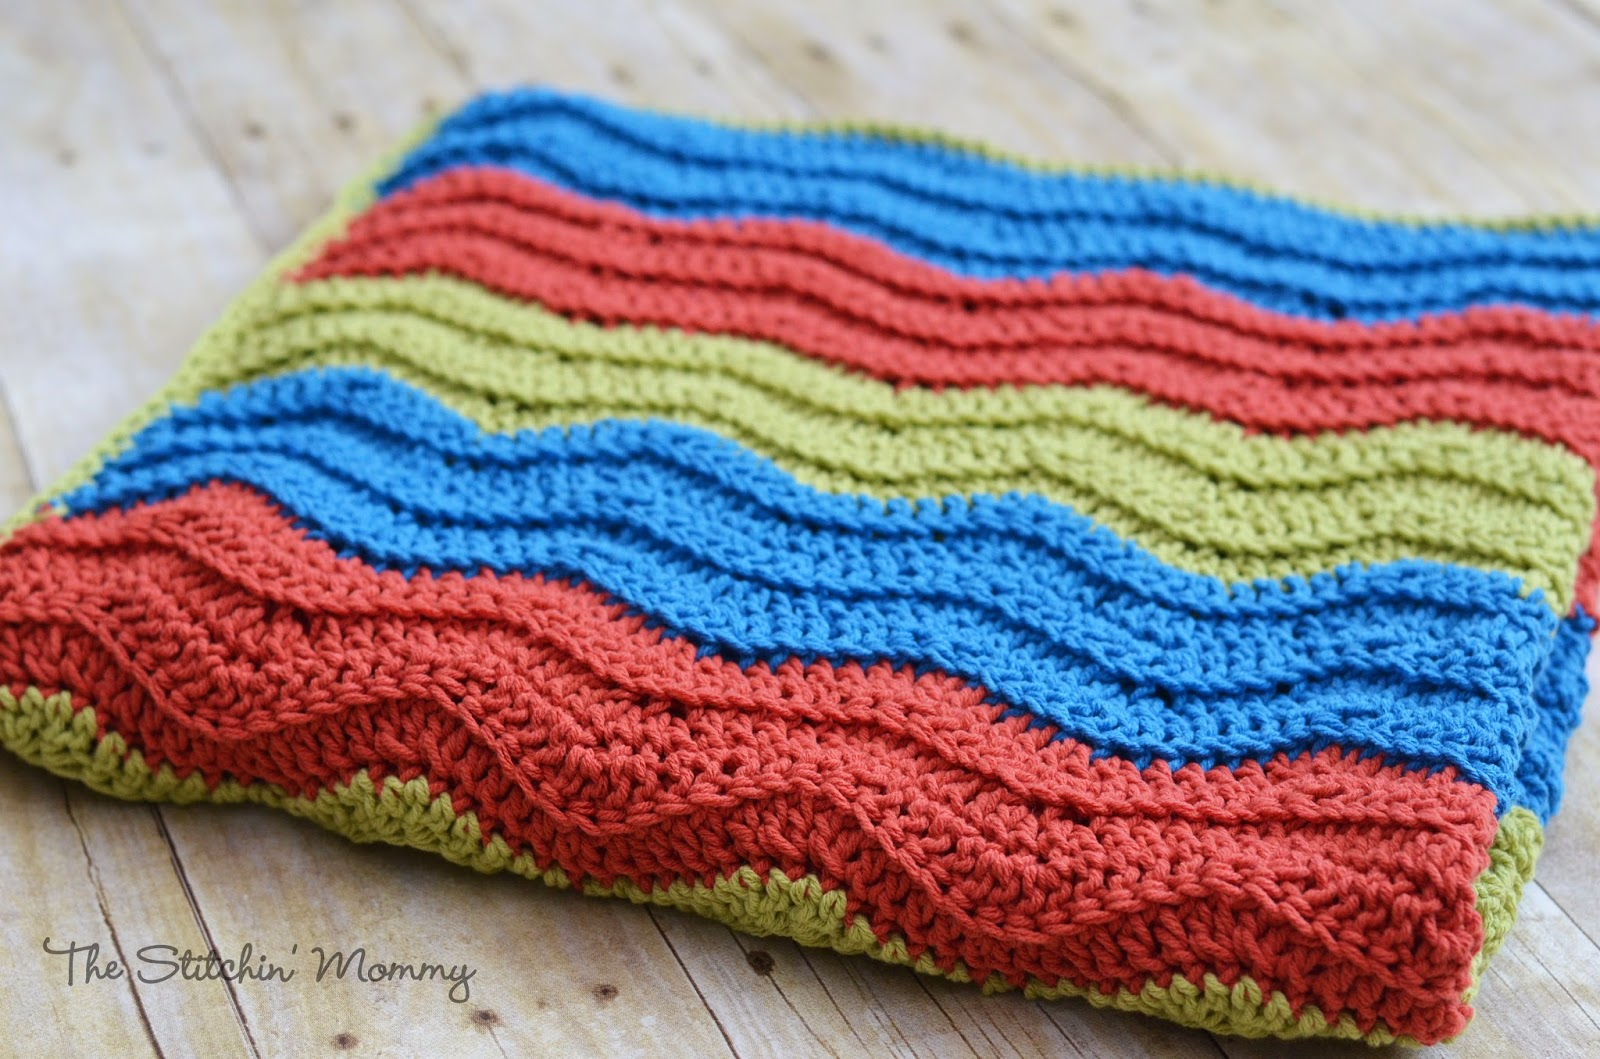 Easy Crochet Ripple Blanket Thestitchinmommy Easy Crochet Ripple Blanket  The Stitchin Mommy